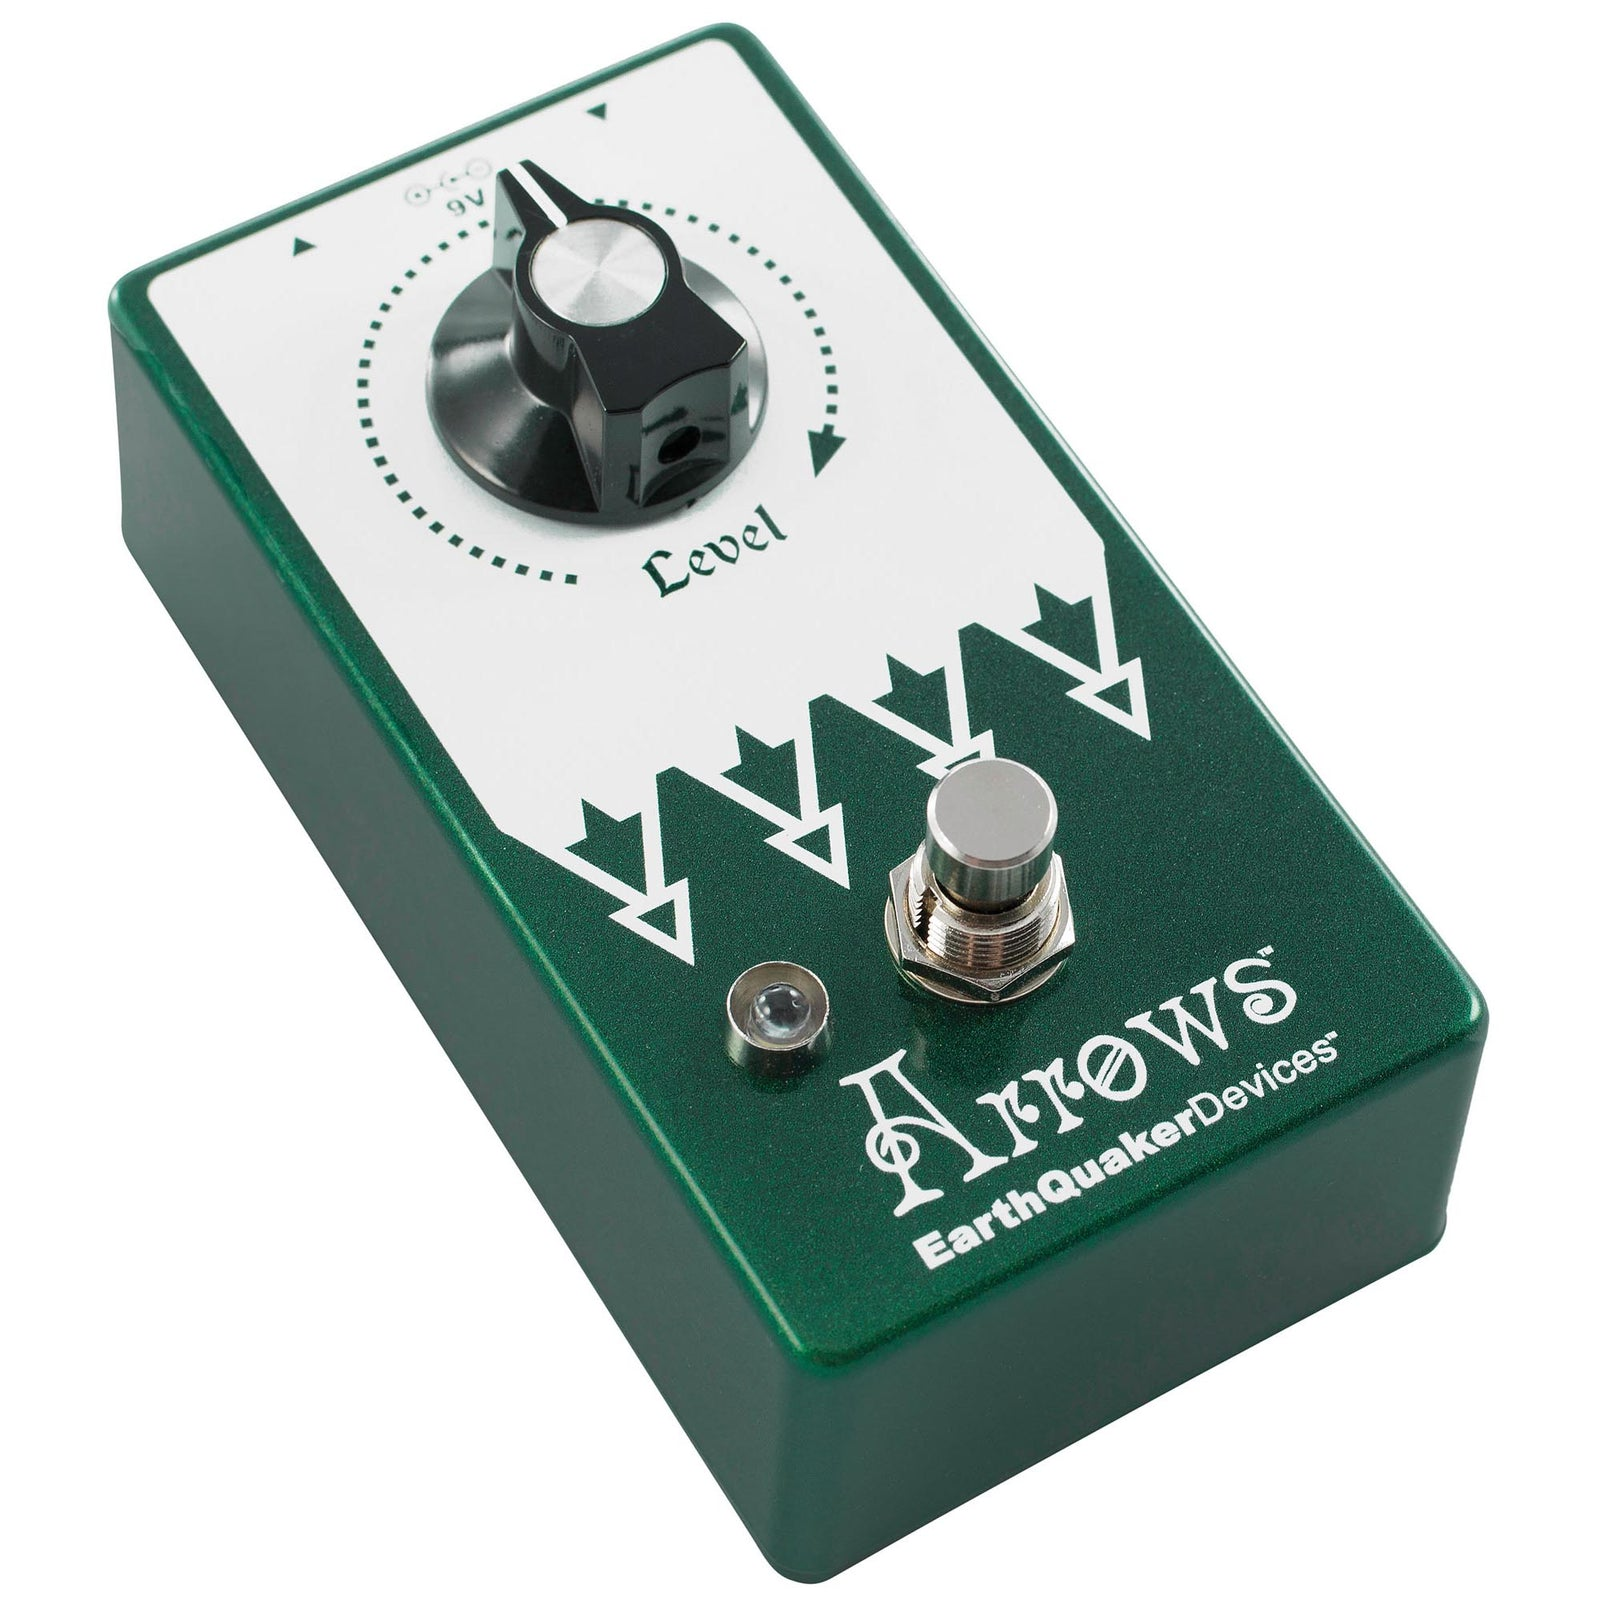 Earthquaker Arrows V2 Preamp Booster - Image: 2